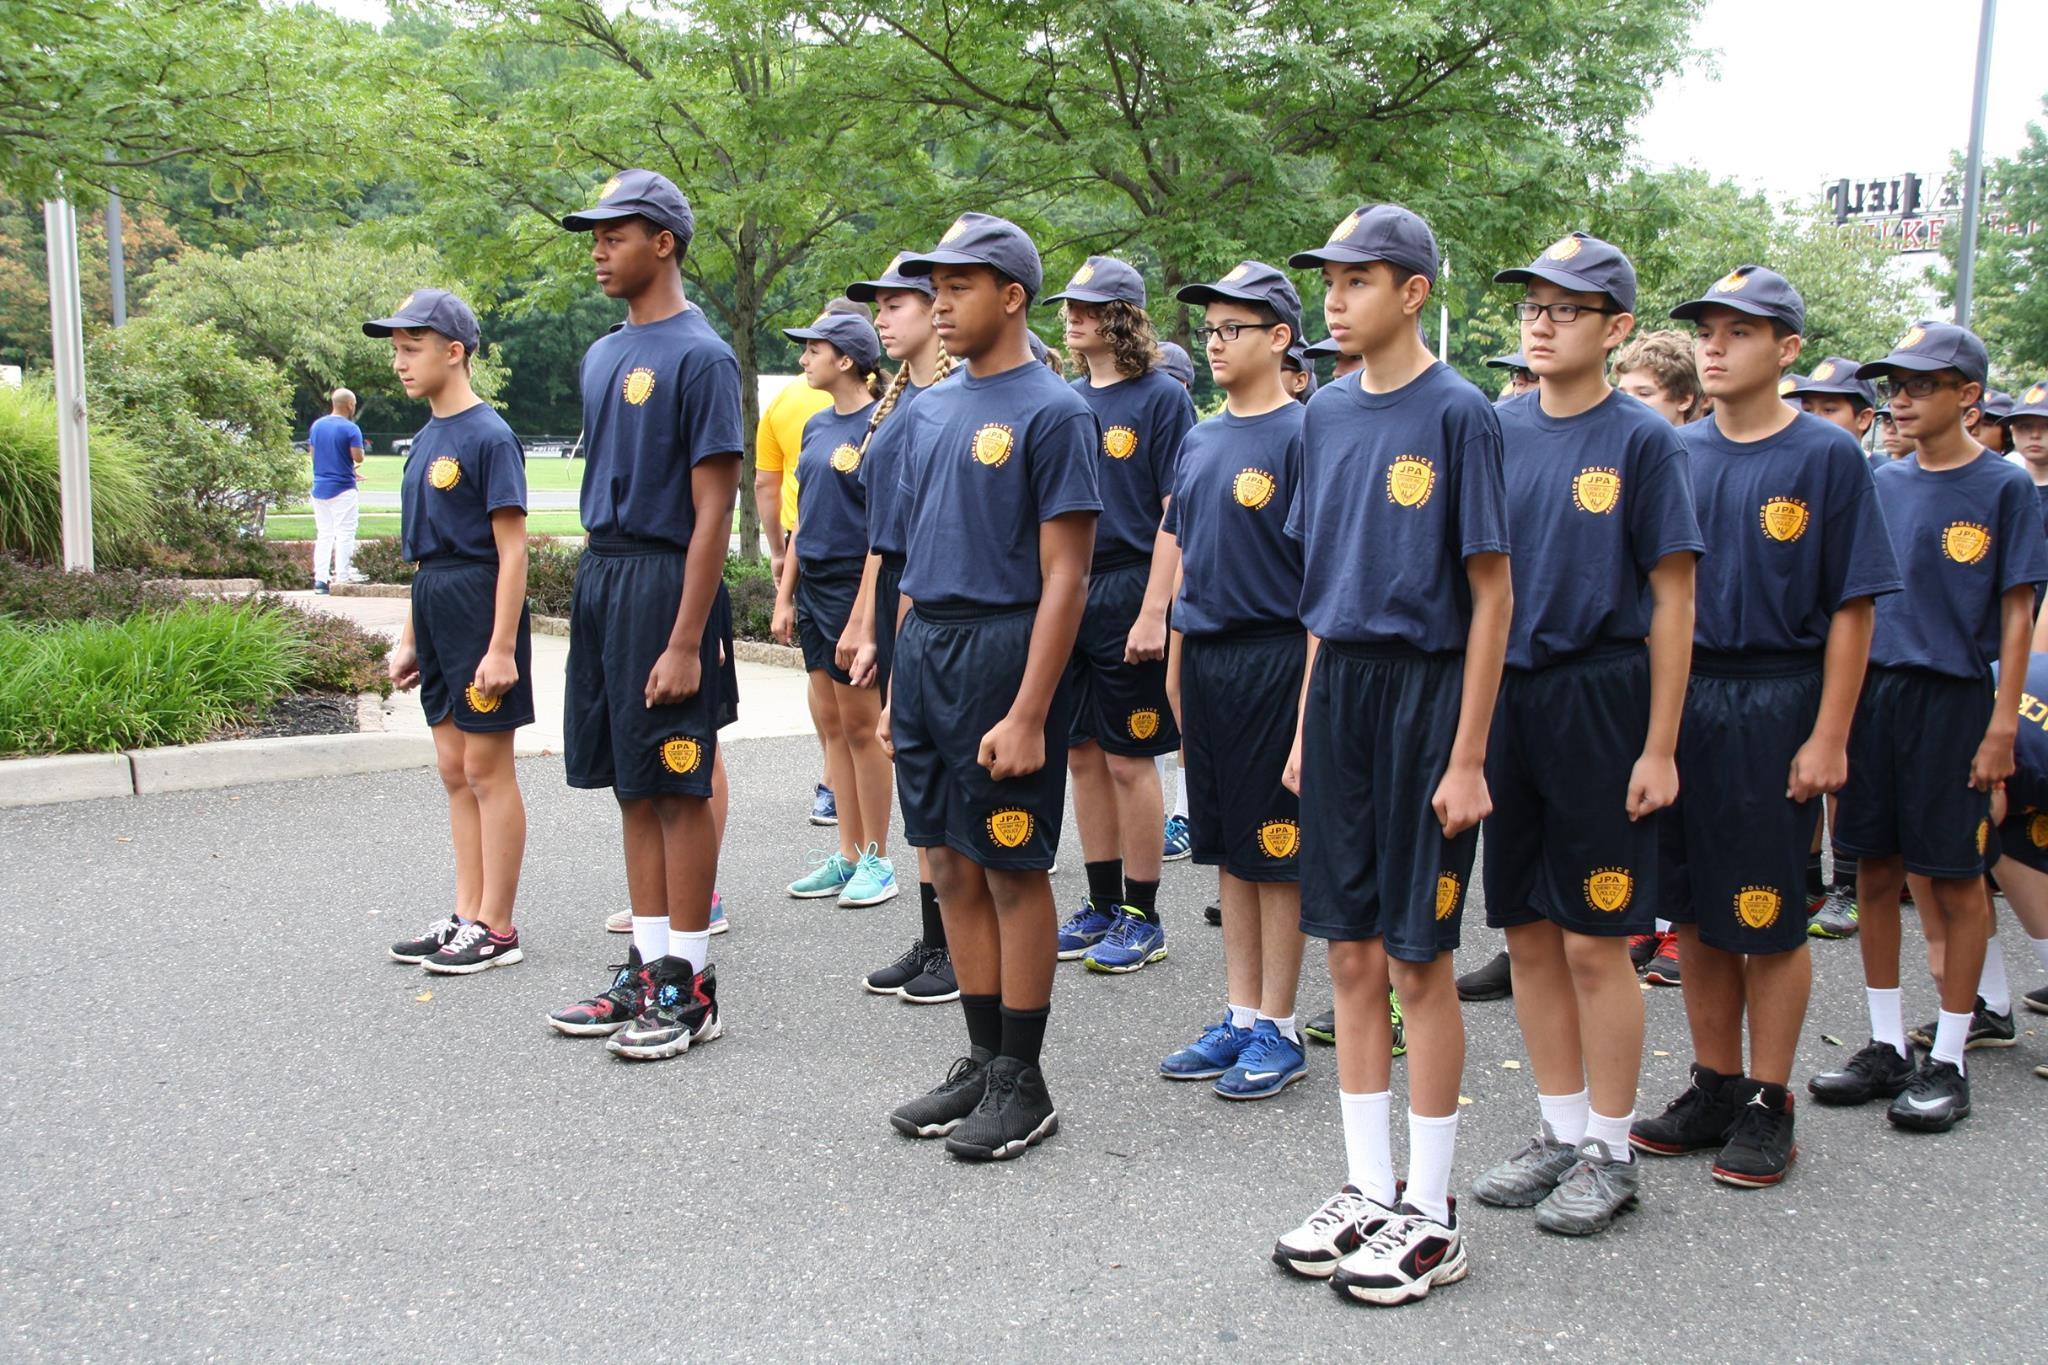 Youth in navy uniforms standing at attention